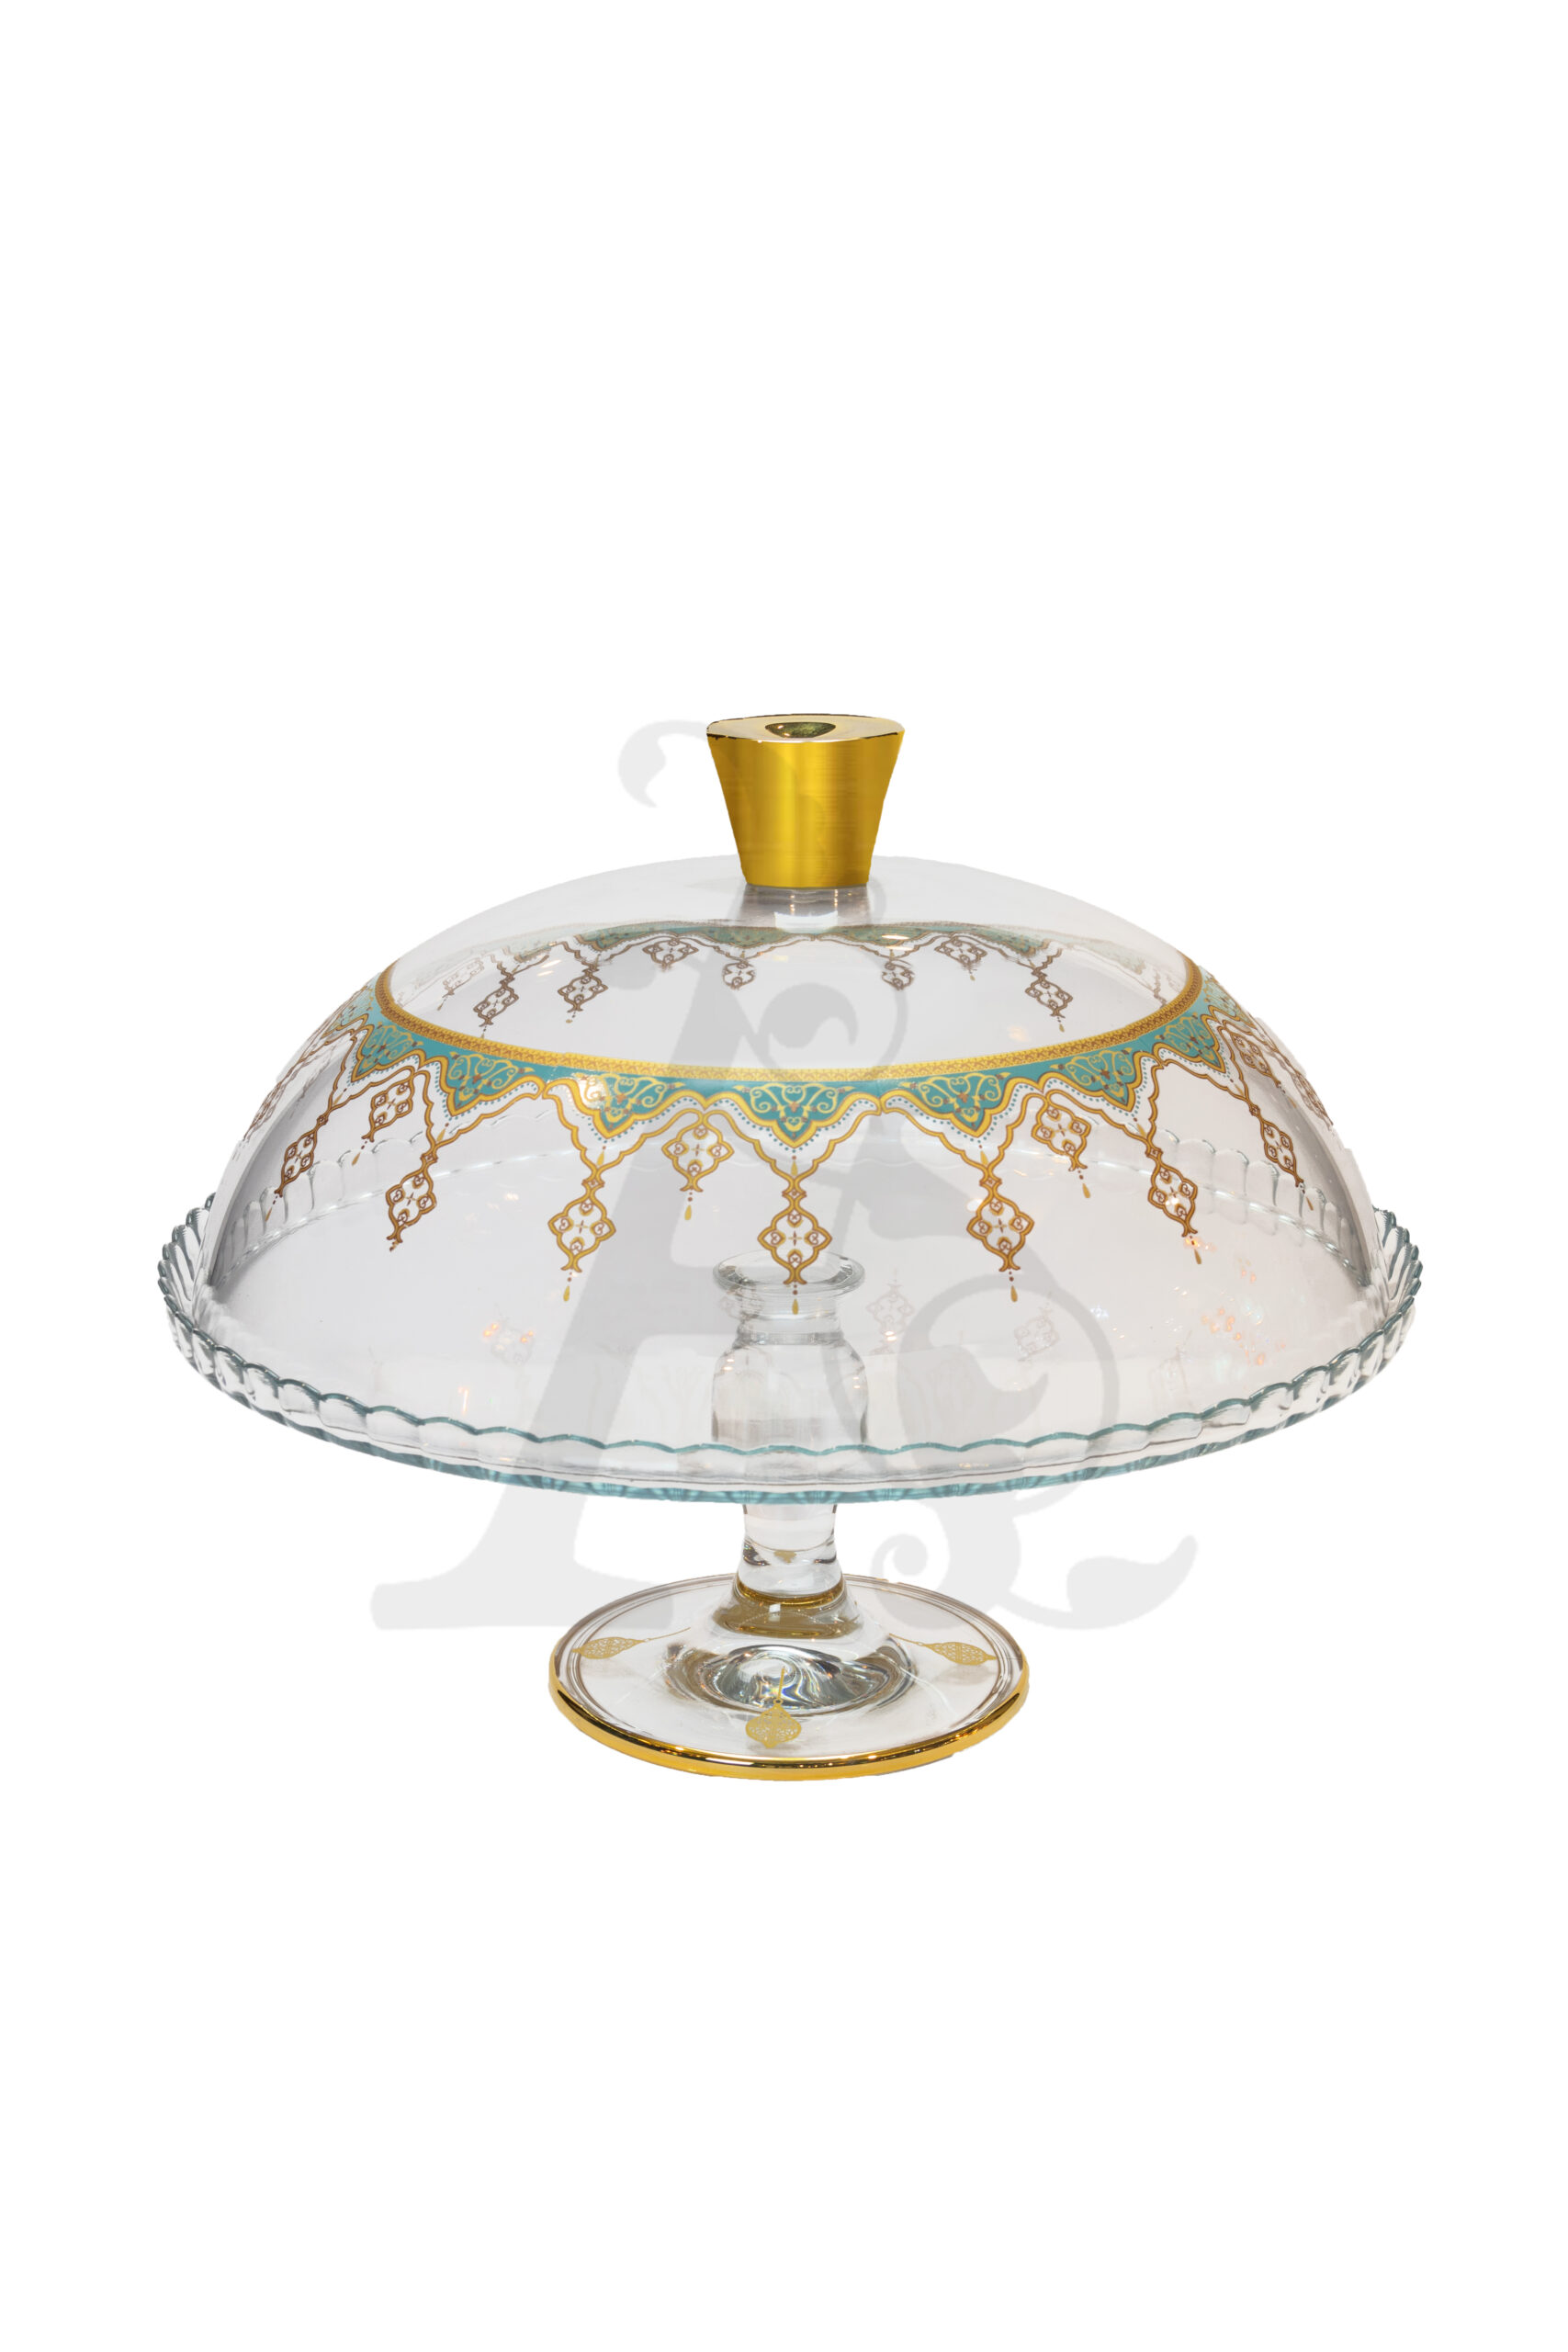 Buy Dessert Plate with Lid Green Border 95200